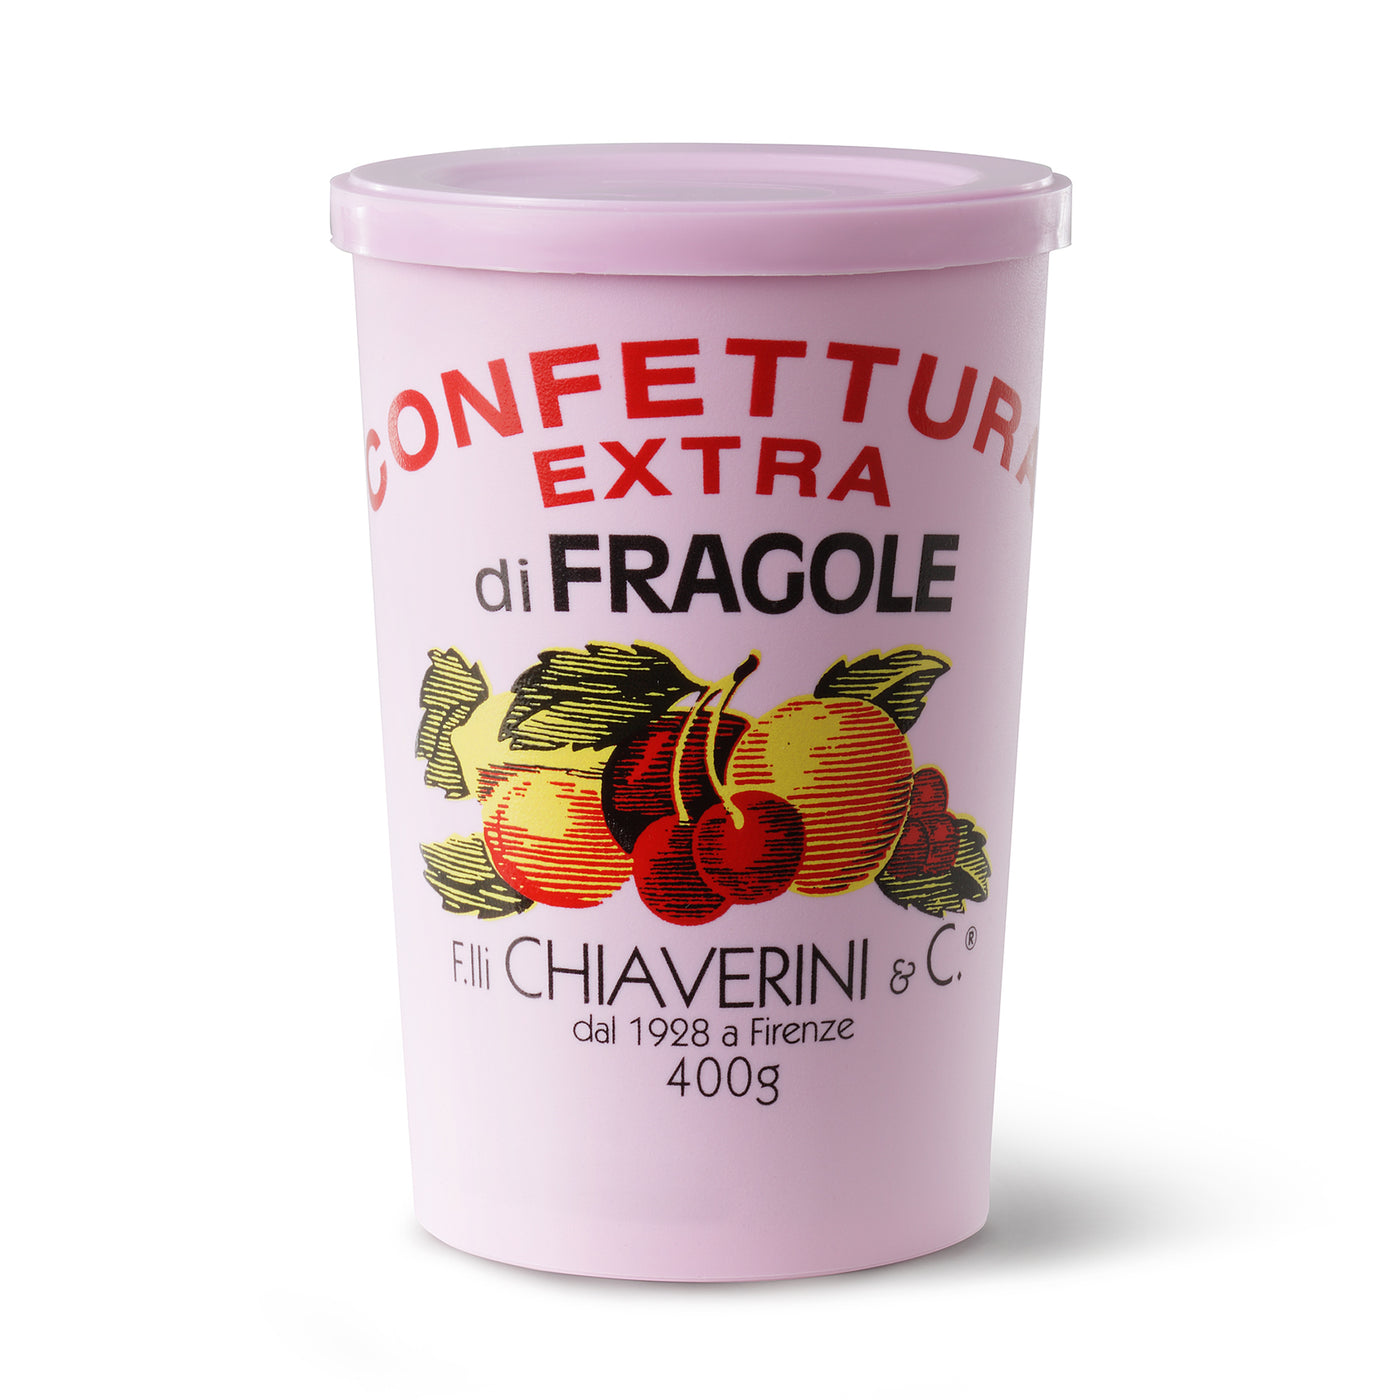 F.IIi Chiaverini & Co Confettura Extra di Fragole (Strawberry Jam) 400 Gram